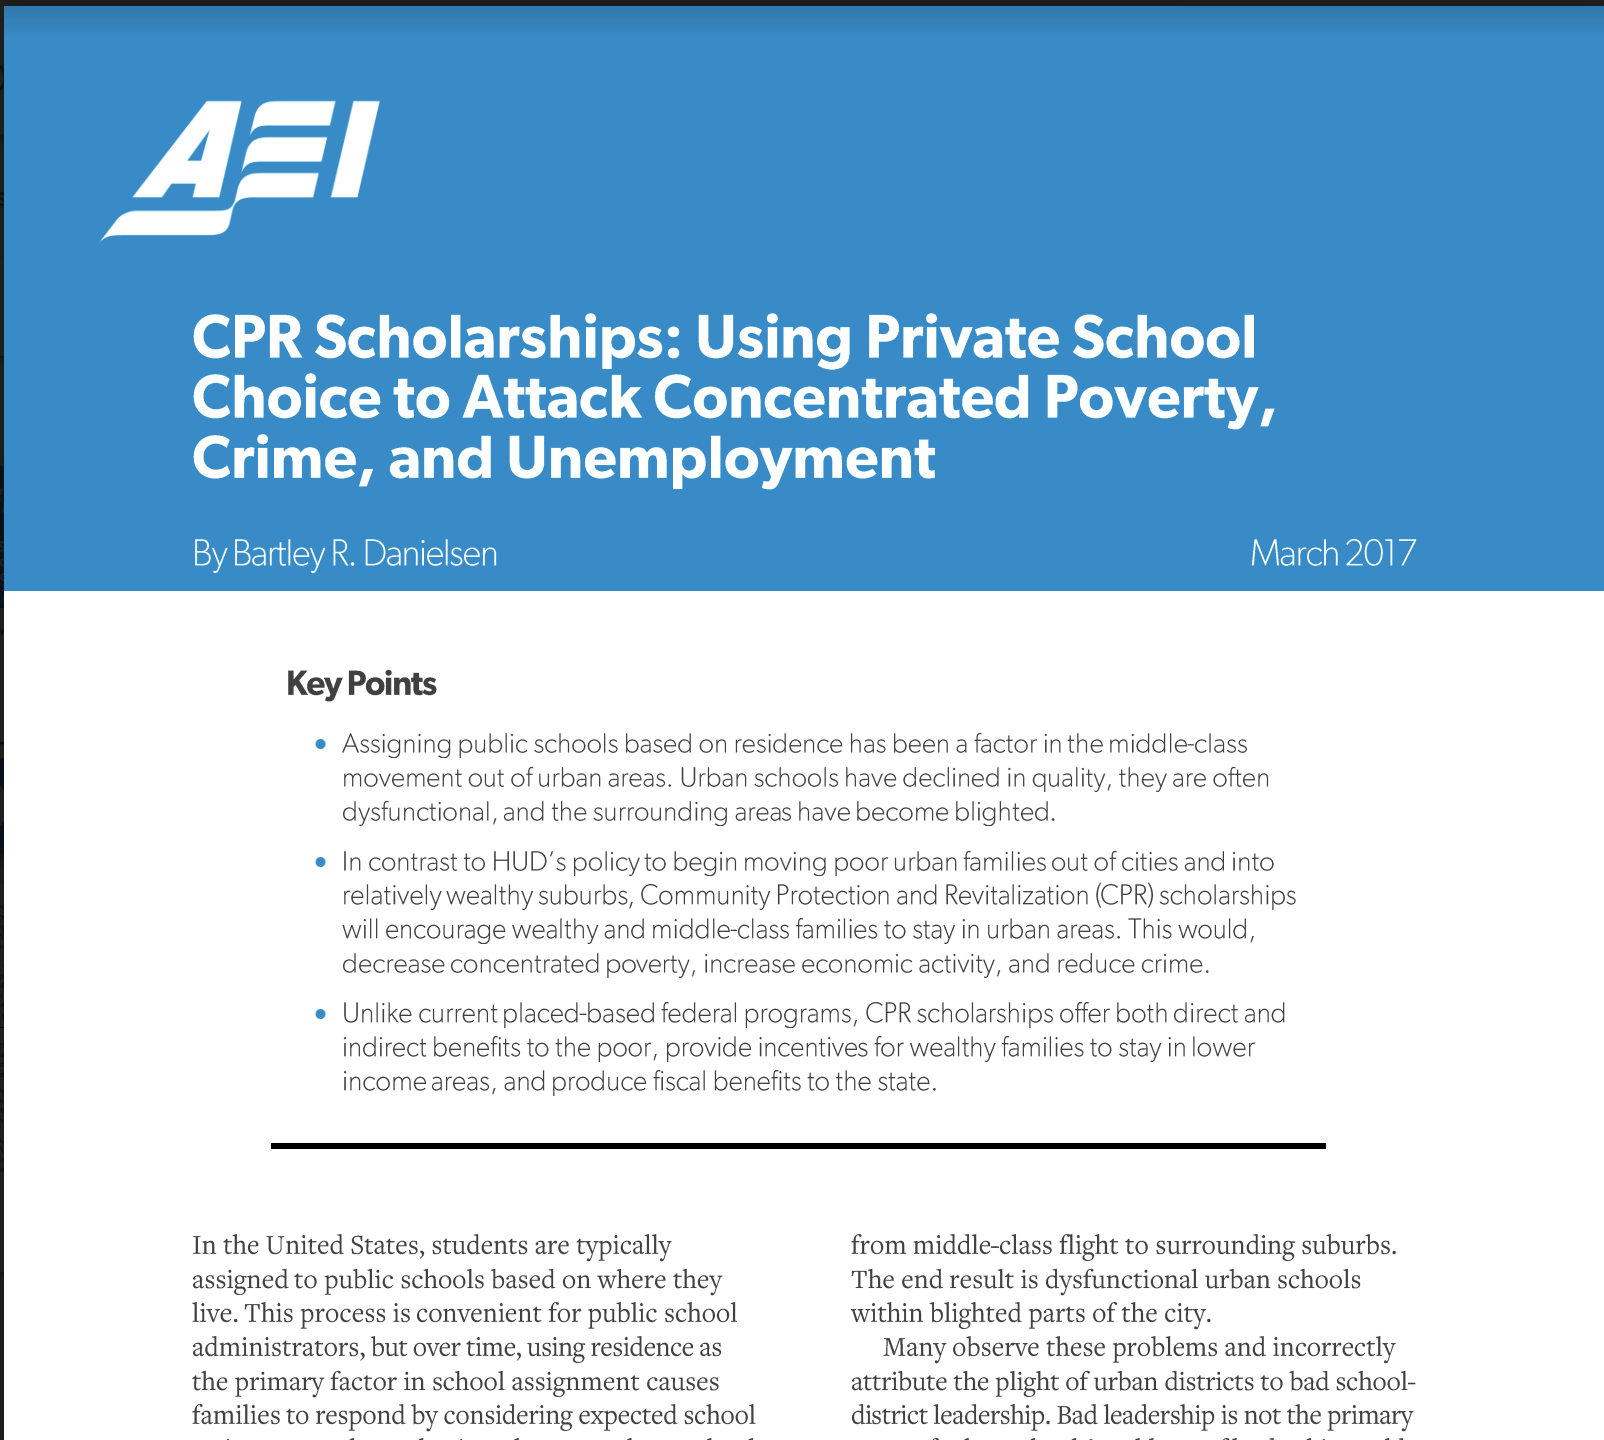 CPR Scholarships: Using Private School Choice to Attack Concentrated Poverty, Crime, and Unemployment